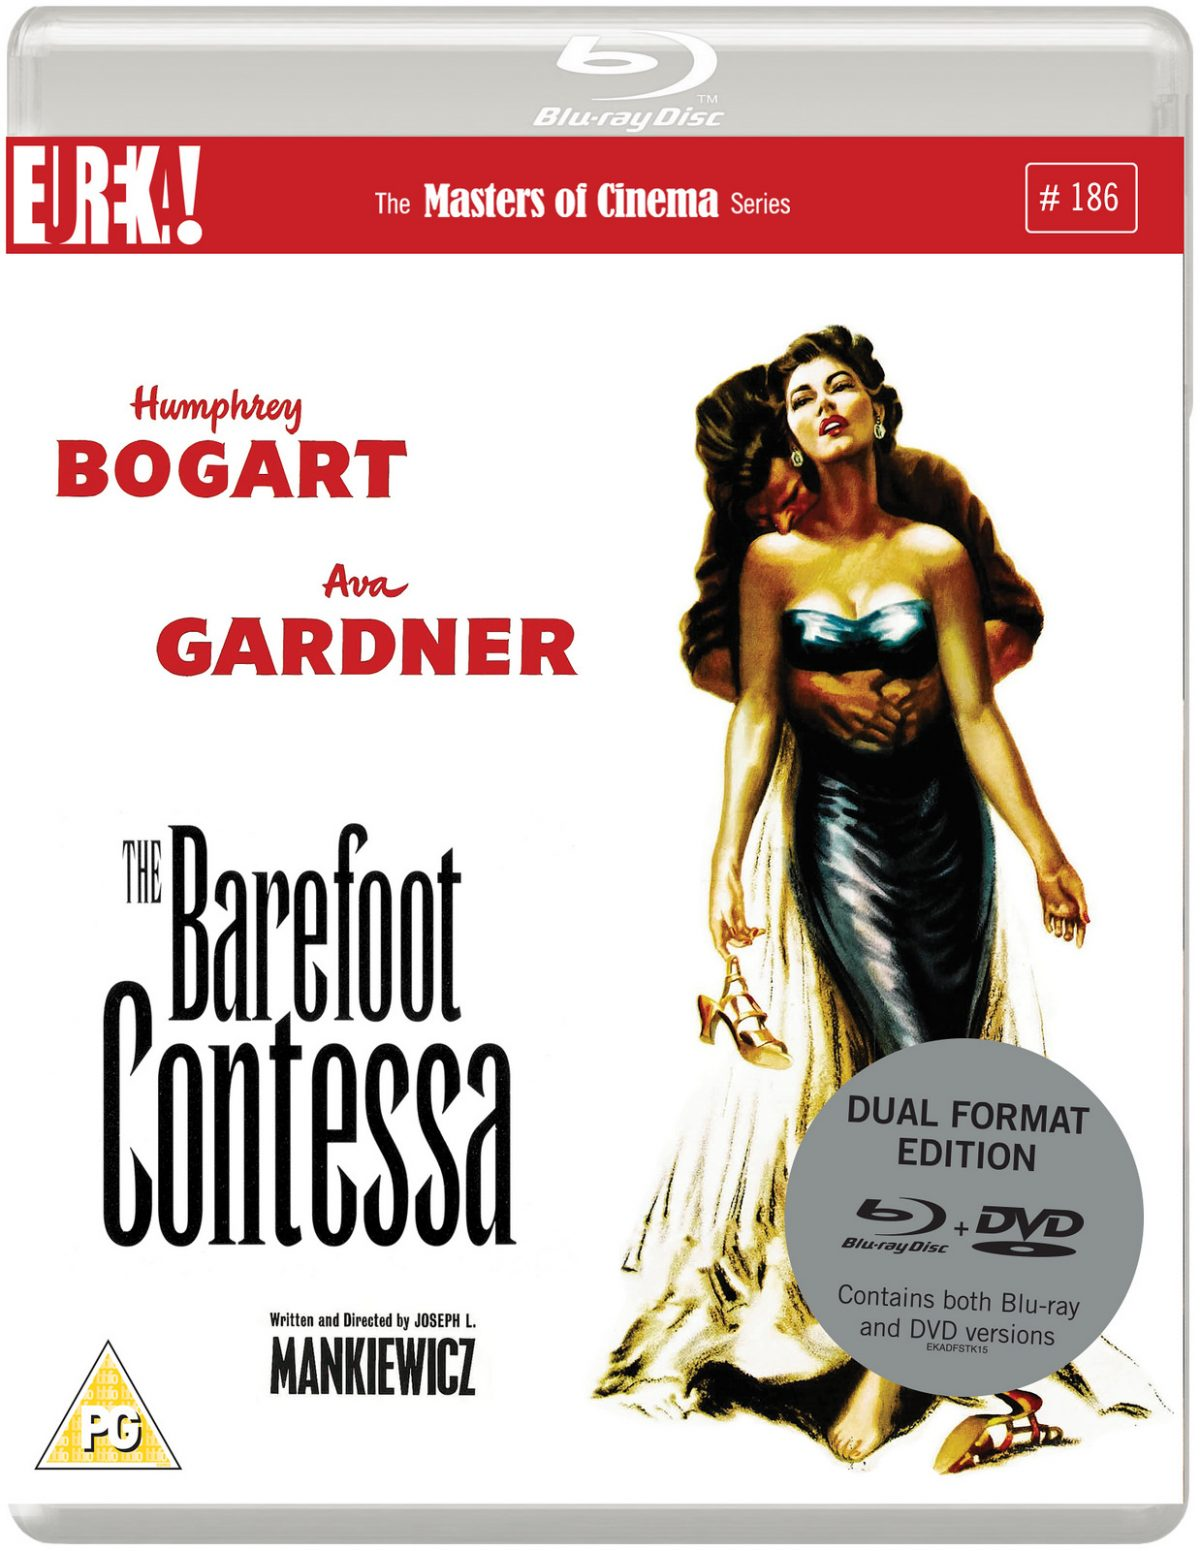 Blazing Minds and Eureka Entertainment have got together to bring you the chance to win a copy of their new release THE BAREFOOT CONTESSA